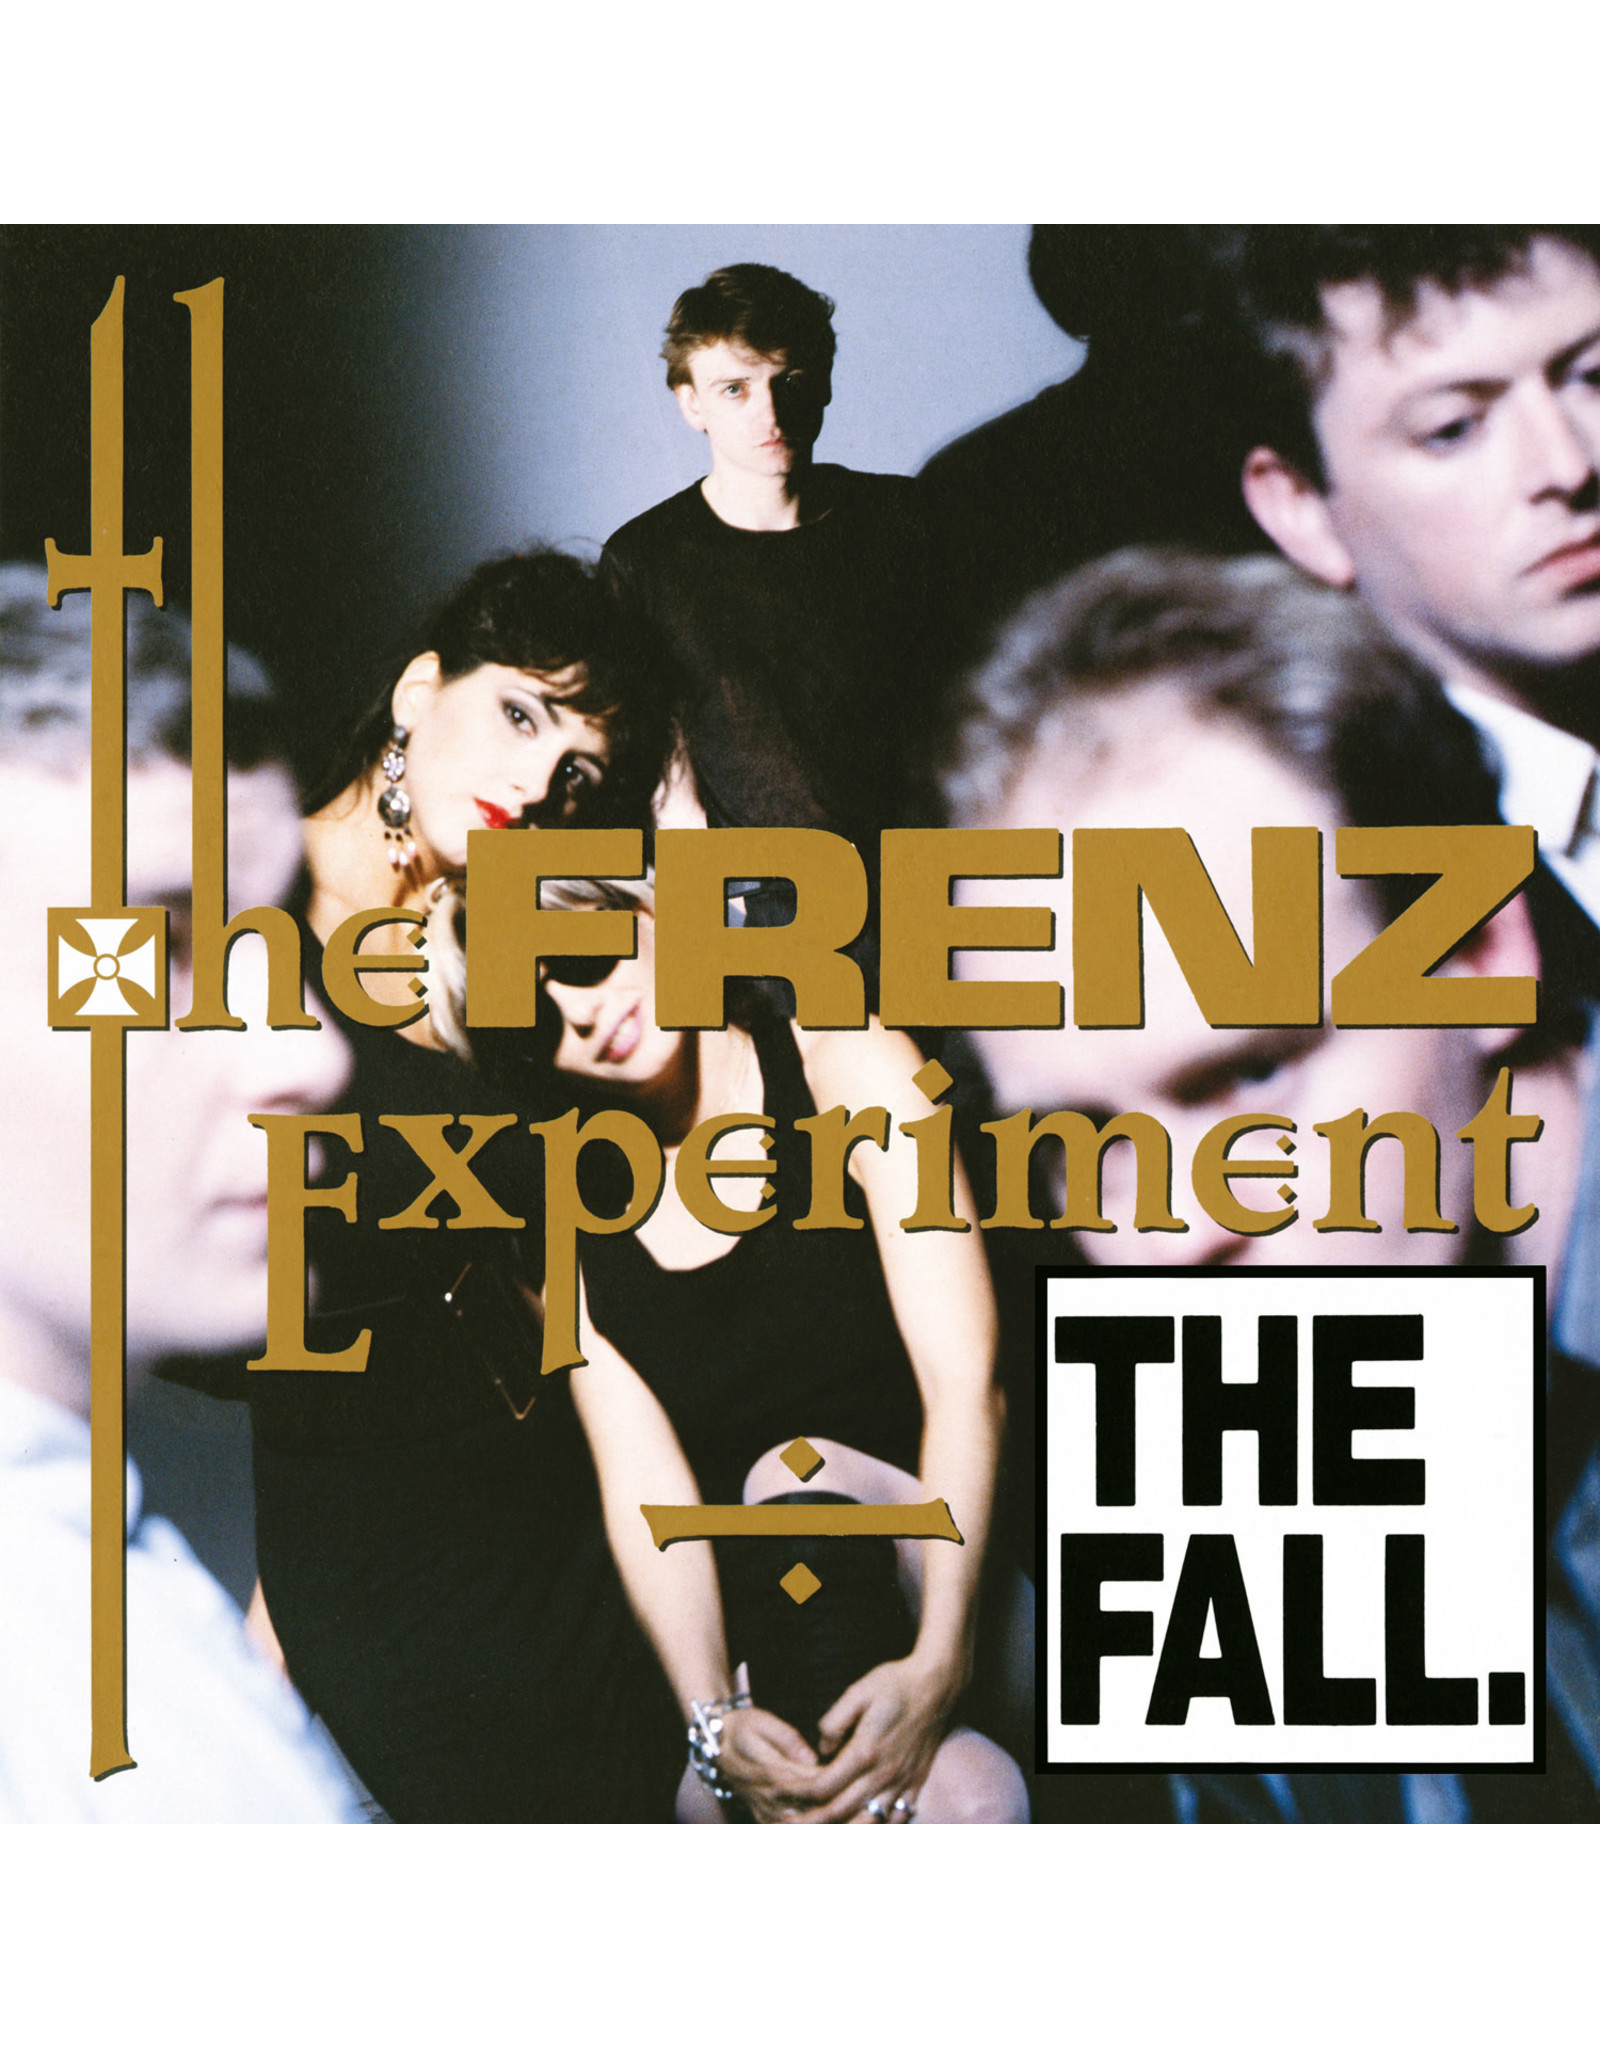 Fall - The Frenz Experiment (Expanded Edition)